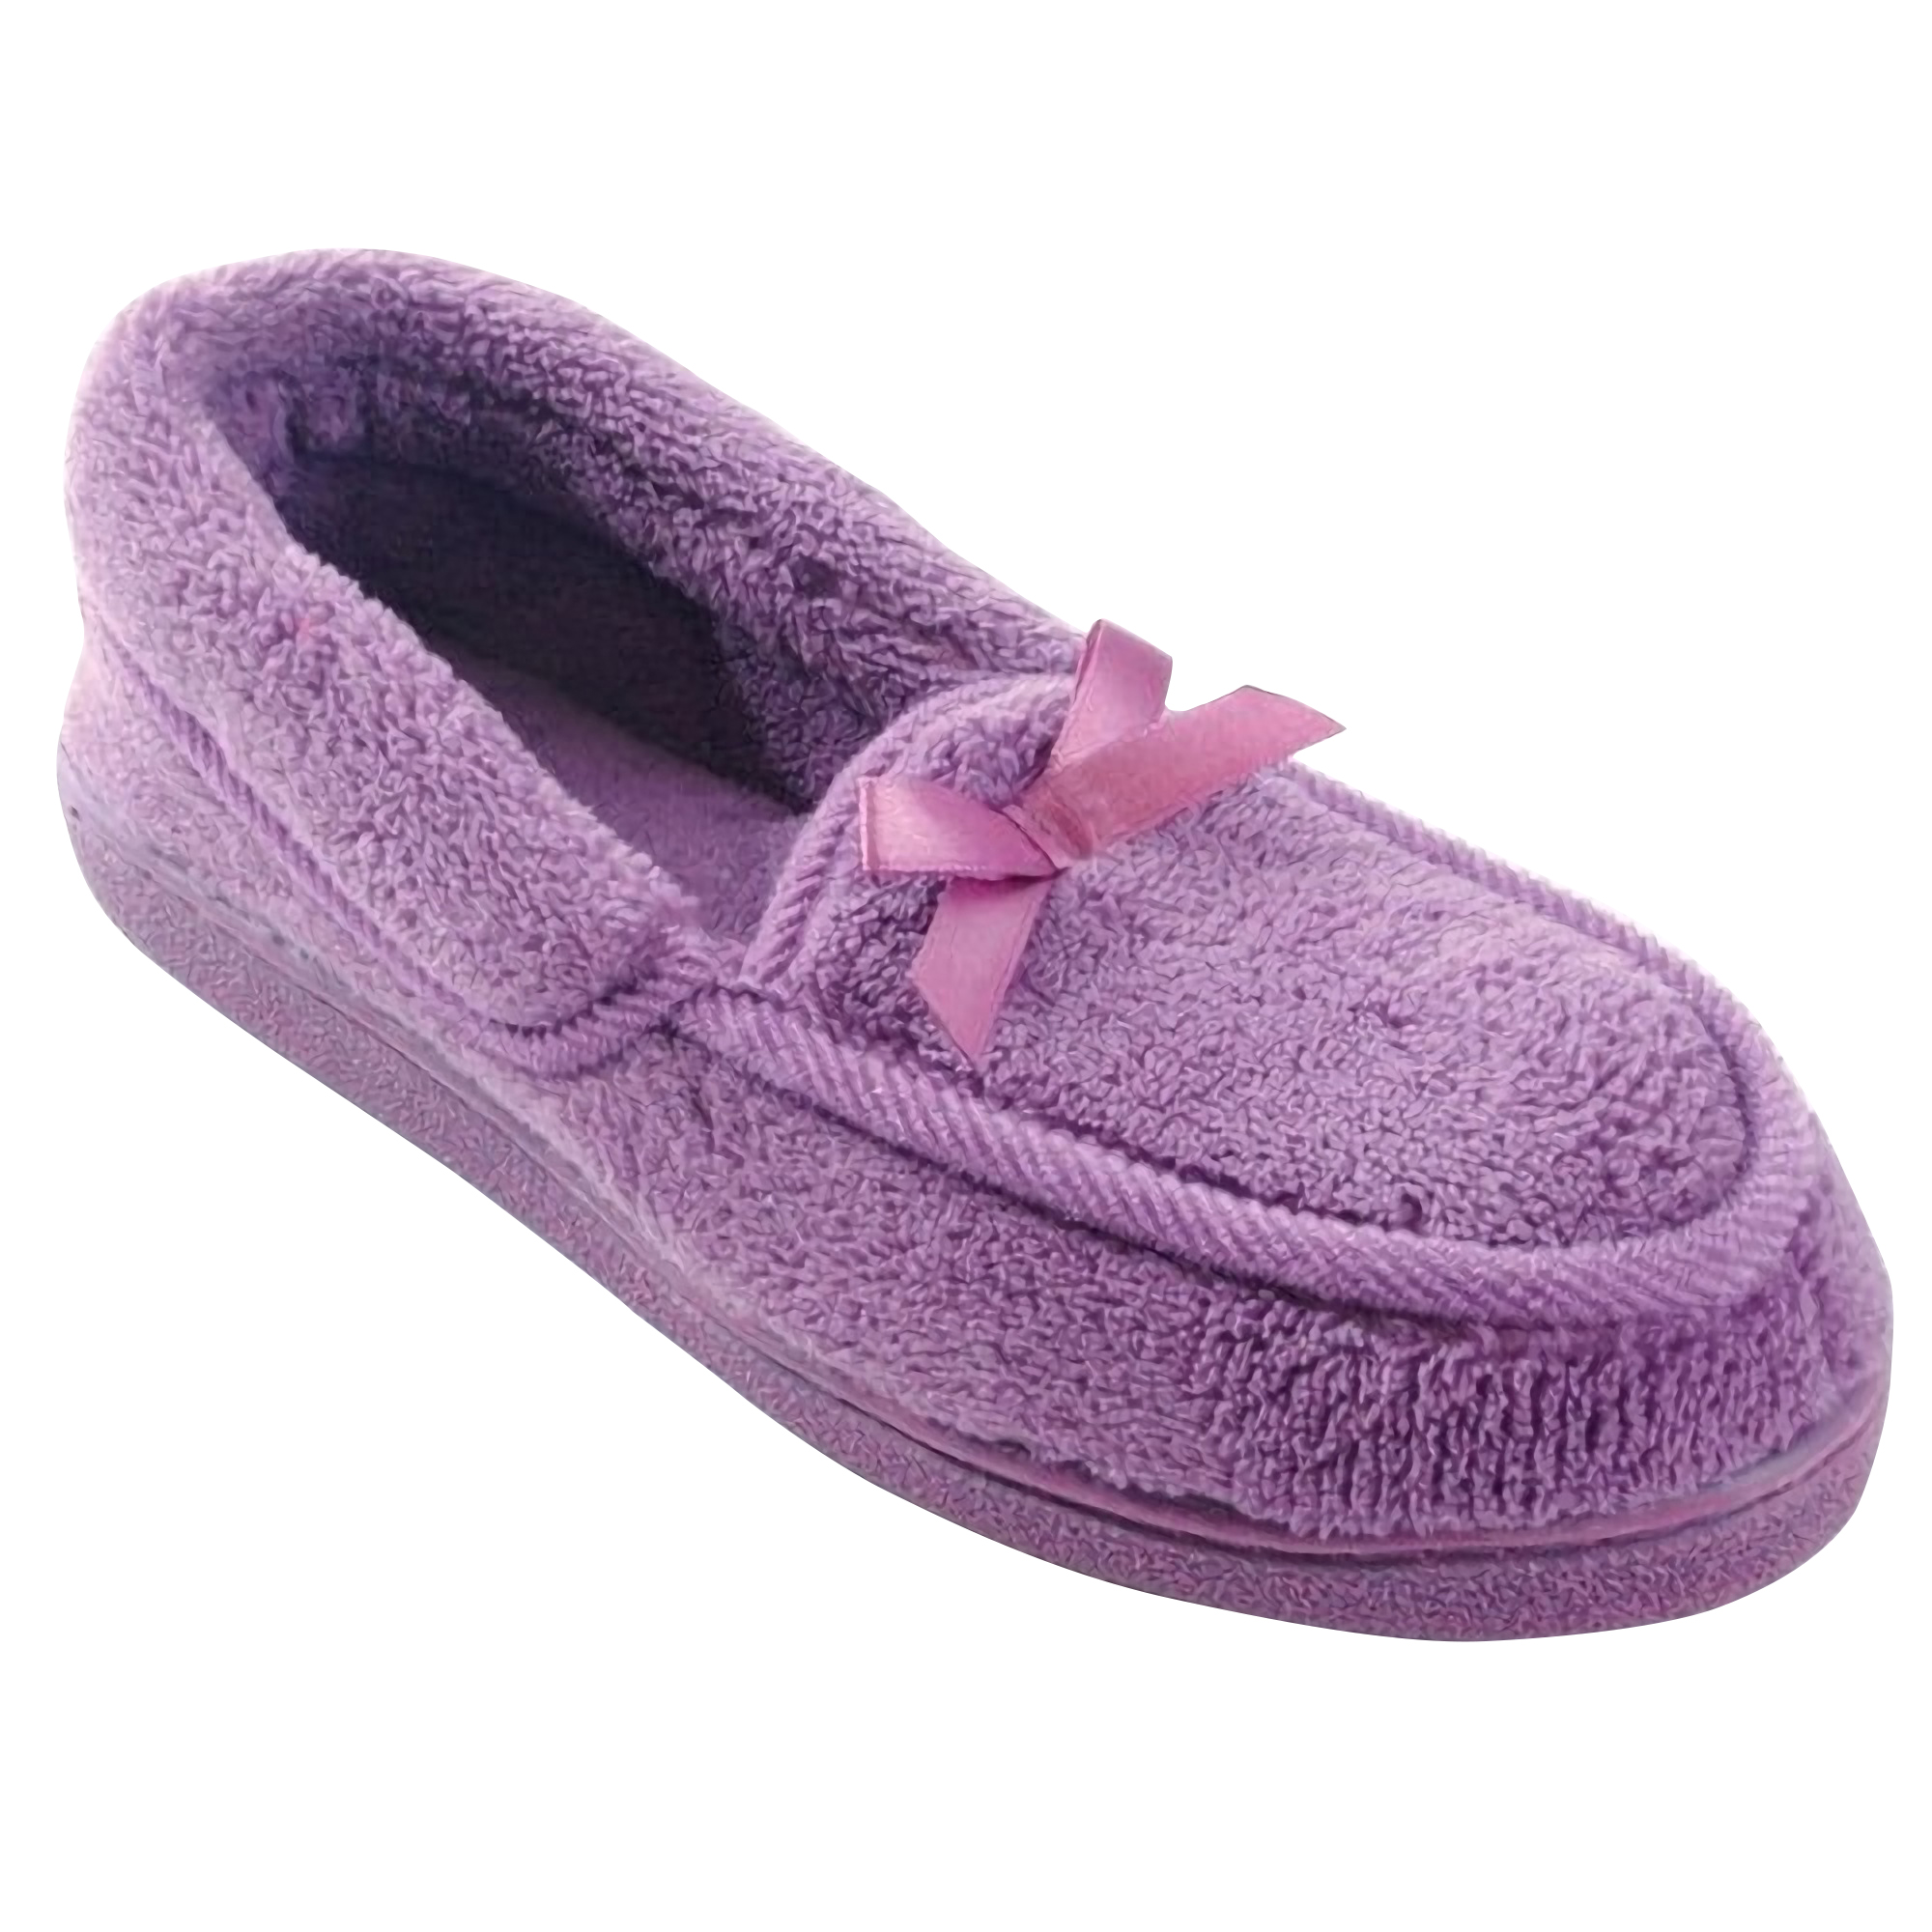 Women's House Slippers. invalid category id. Women's House Slippers. Luxurious Cotton Cloth Slipper Slippers Home Salon Spa Hotel Men Women Closed Toes - 10 Pairs - Red. Product Image. Price $ Items sold by shopnow-jl6vb8f5.ga that are marked eligible .